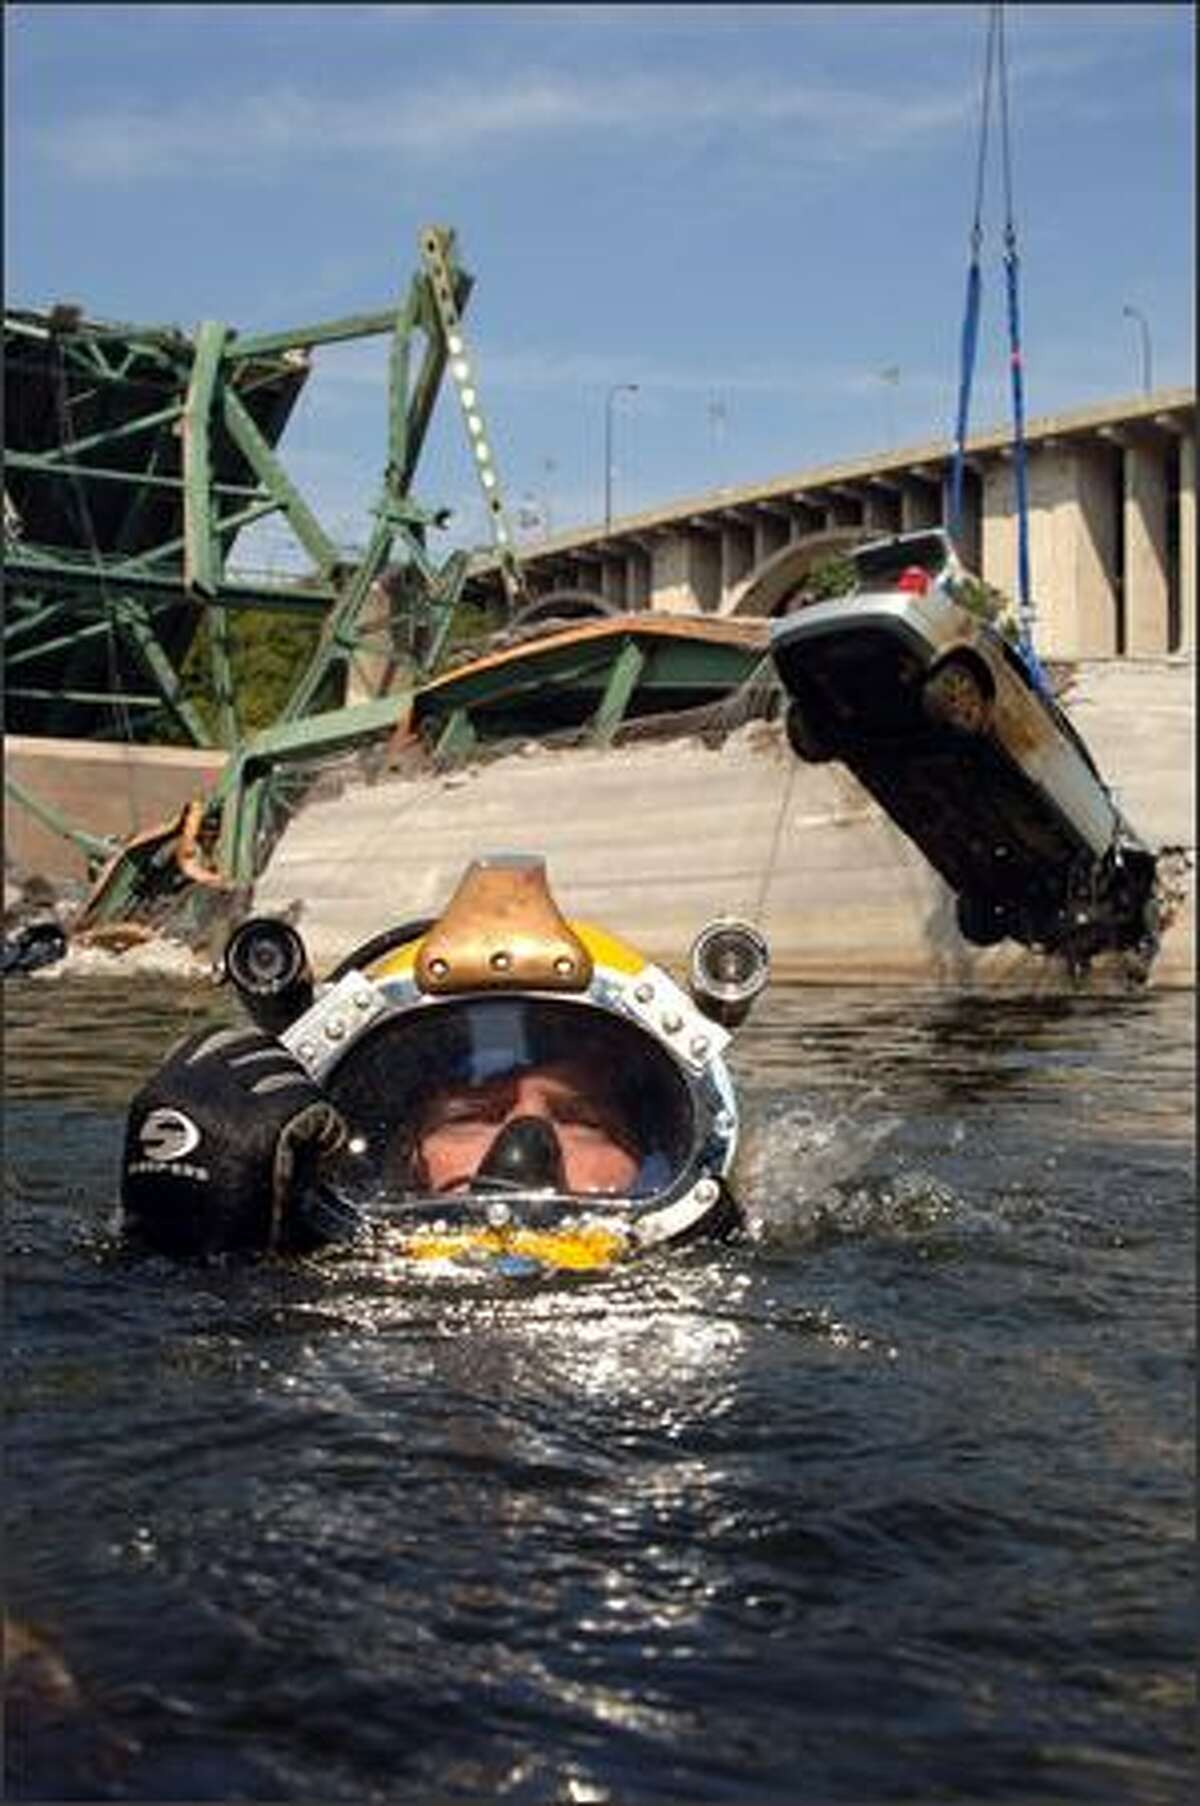 In this image made available on Thursday, Aug. 9, 2007, by the U.S. Navy, a Navy diver surfaces after completing a salvage dive in the Mississippi River, Wednesday, Aug. 8, 2007, as the vehicle he and his team rigged is lifted from the water in Minneapolis. Divers from the Navy and the FBI have joined local law enforcement divers in the effort to recover the people who remain missing and are presumed dead among the debris after the Interstate 35W bridge collapsed during the evening rush hour on Aug. 1. Photo/U.S. Navy, Andrew McKaskle